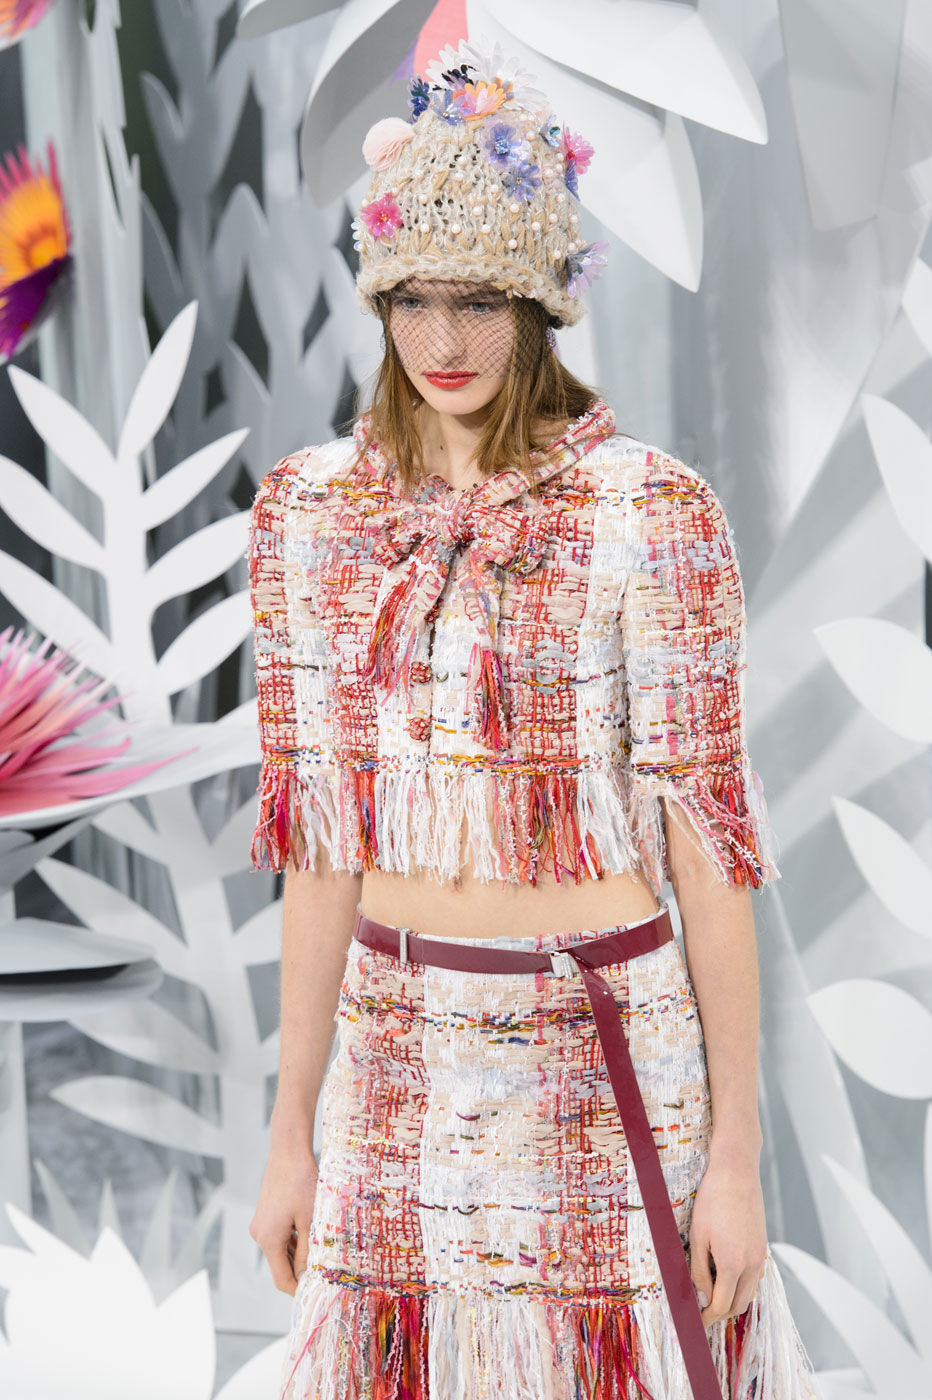 Chanel-fashion-runway-show-haute-couture-paris-spring-summer-2015-the-impression-065